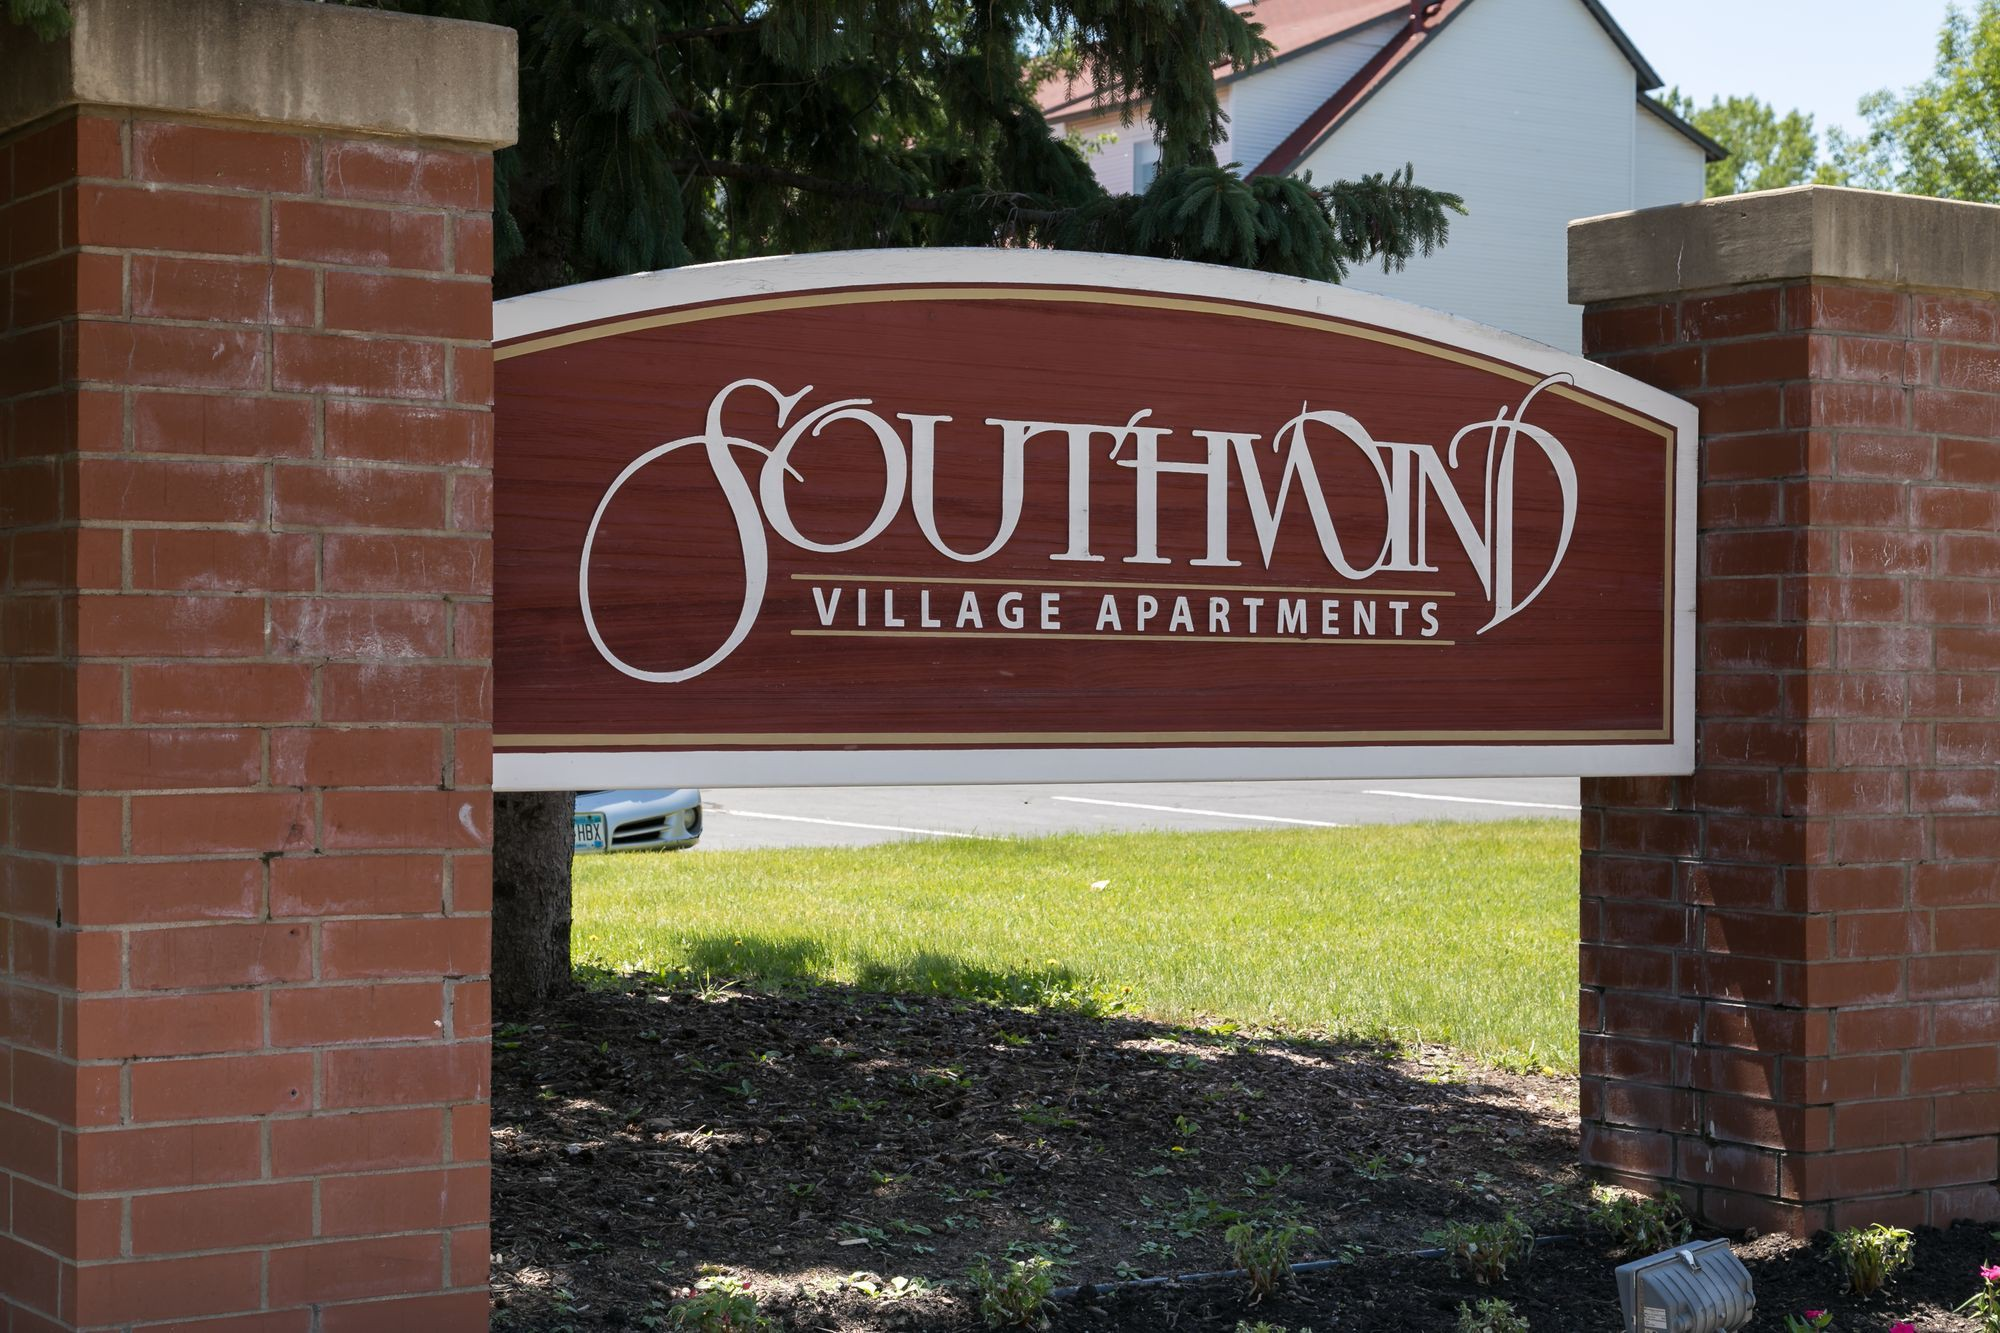 Apartments Near Eden Prairie Southwind Village for Eden Prairie Students in Eden Prairie, MN